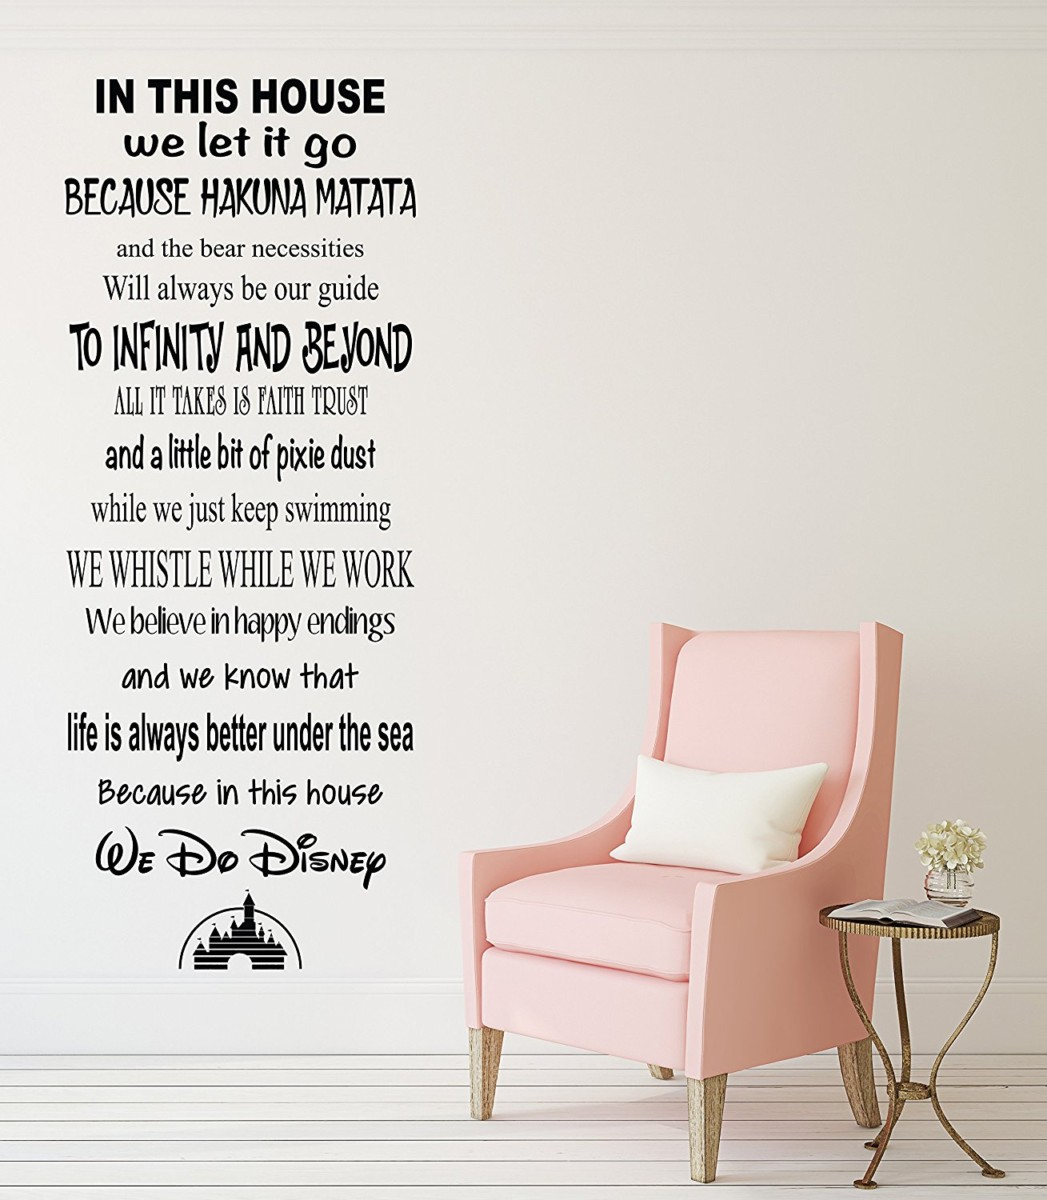 Check out these great disney decals to decorate around your home in this house we do disney famous movie quote wall decal living room decor art vinyl amipublicfo Choice Image